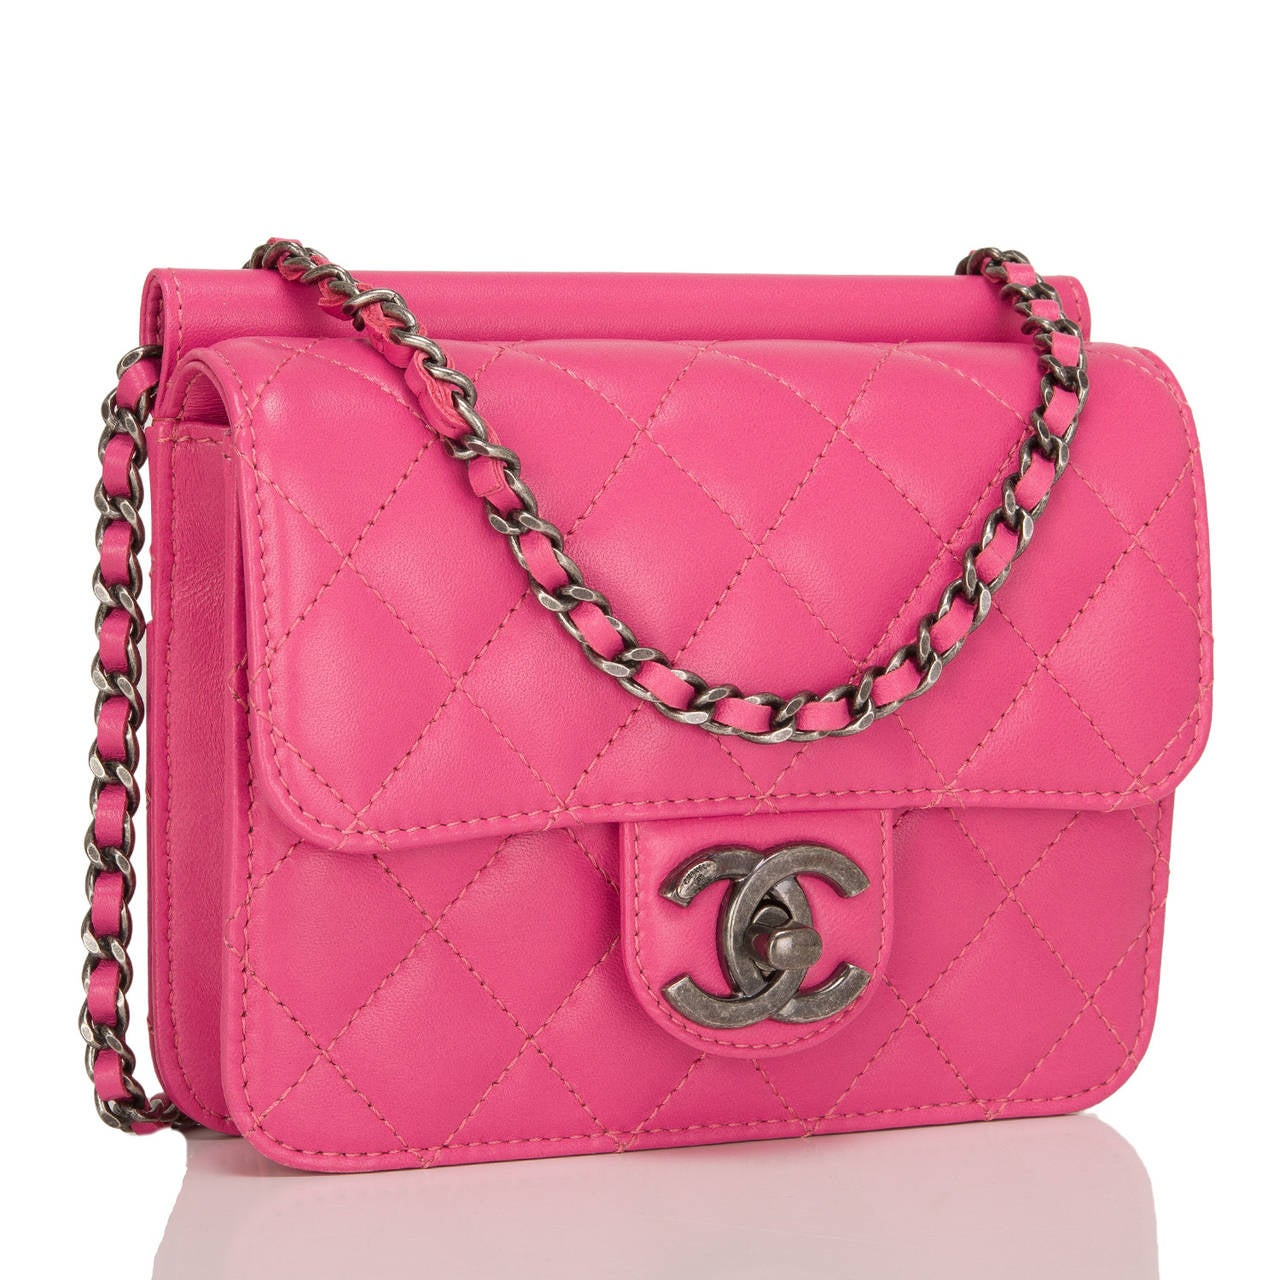 This Chanel Crossing Times Mini Flap bag in pink quilted lambskin leather with aged ruthenium hardware features a front flap and with CC turnlock closure, half moon back pocket and interwoven chain link and pink leather shoulder/crossbody.